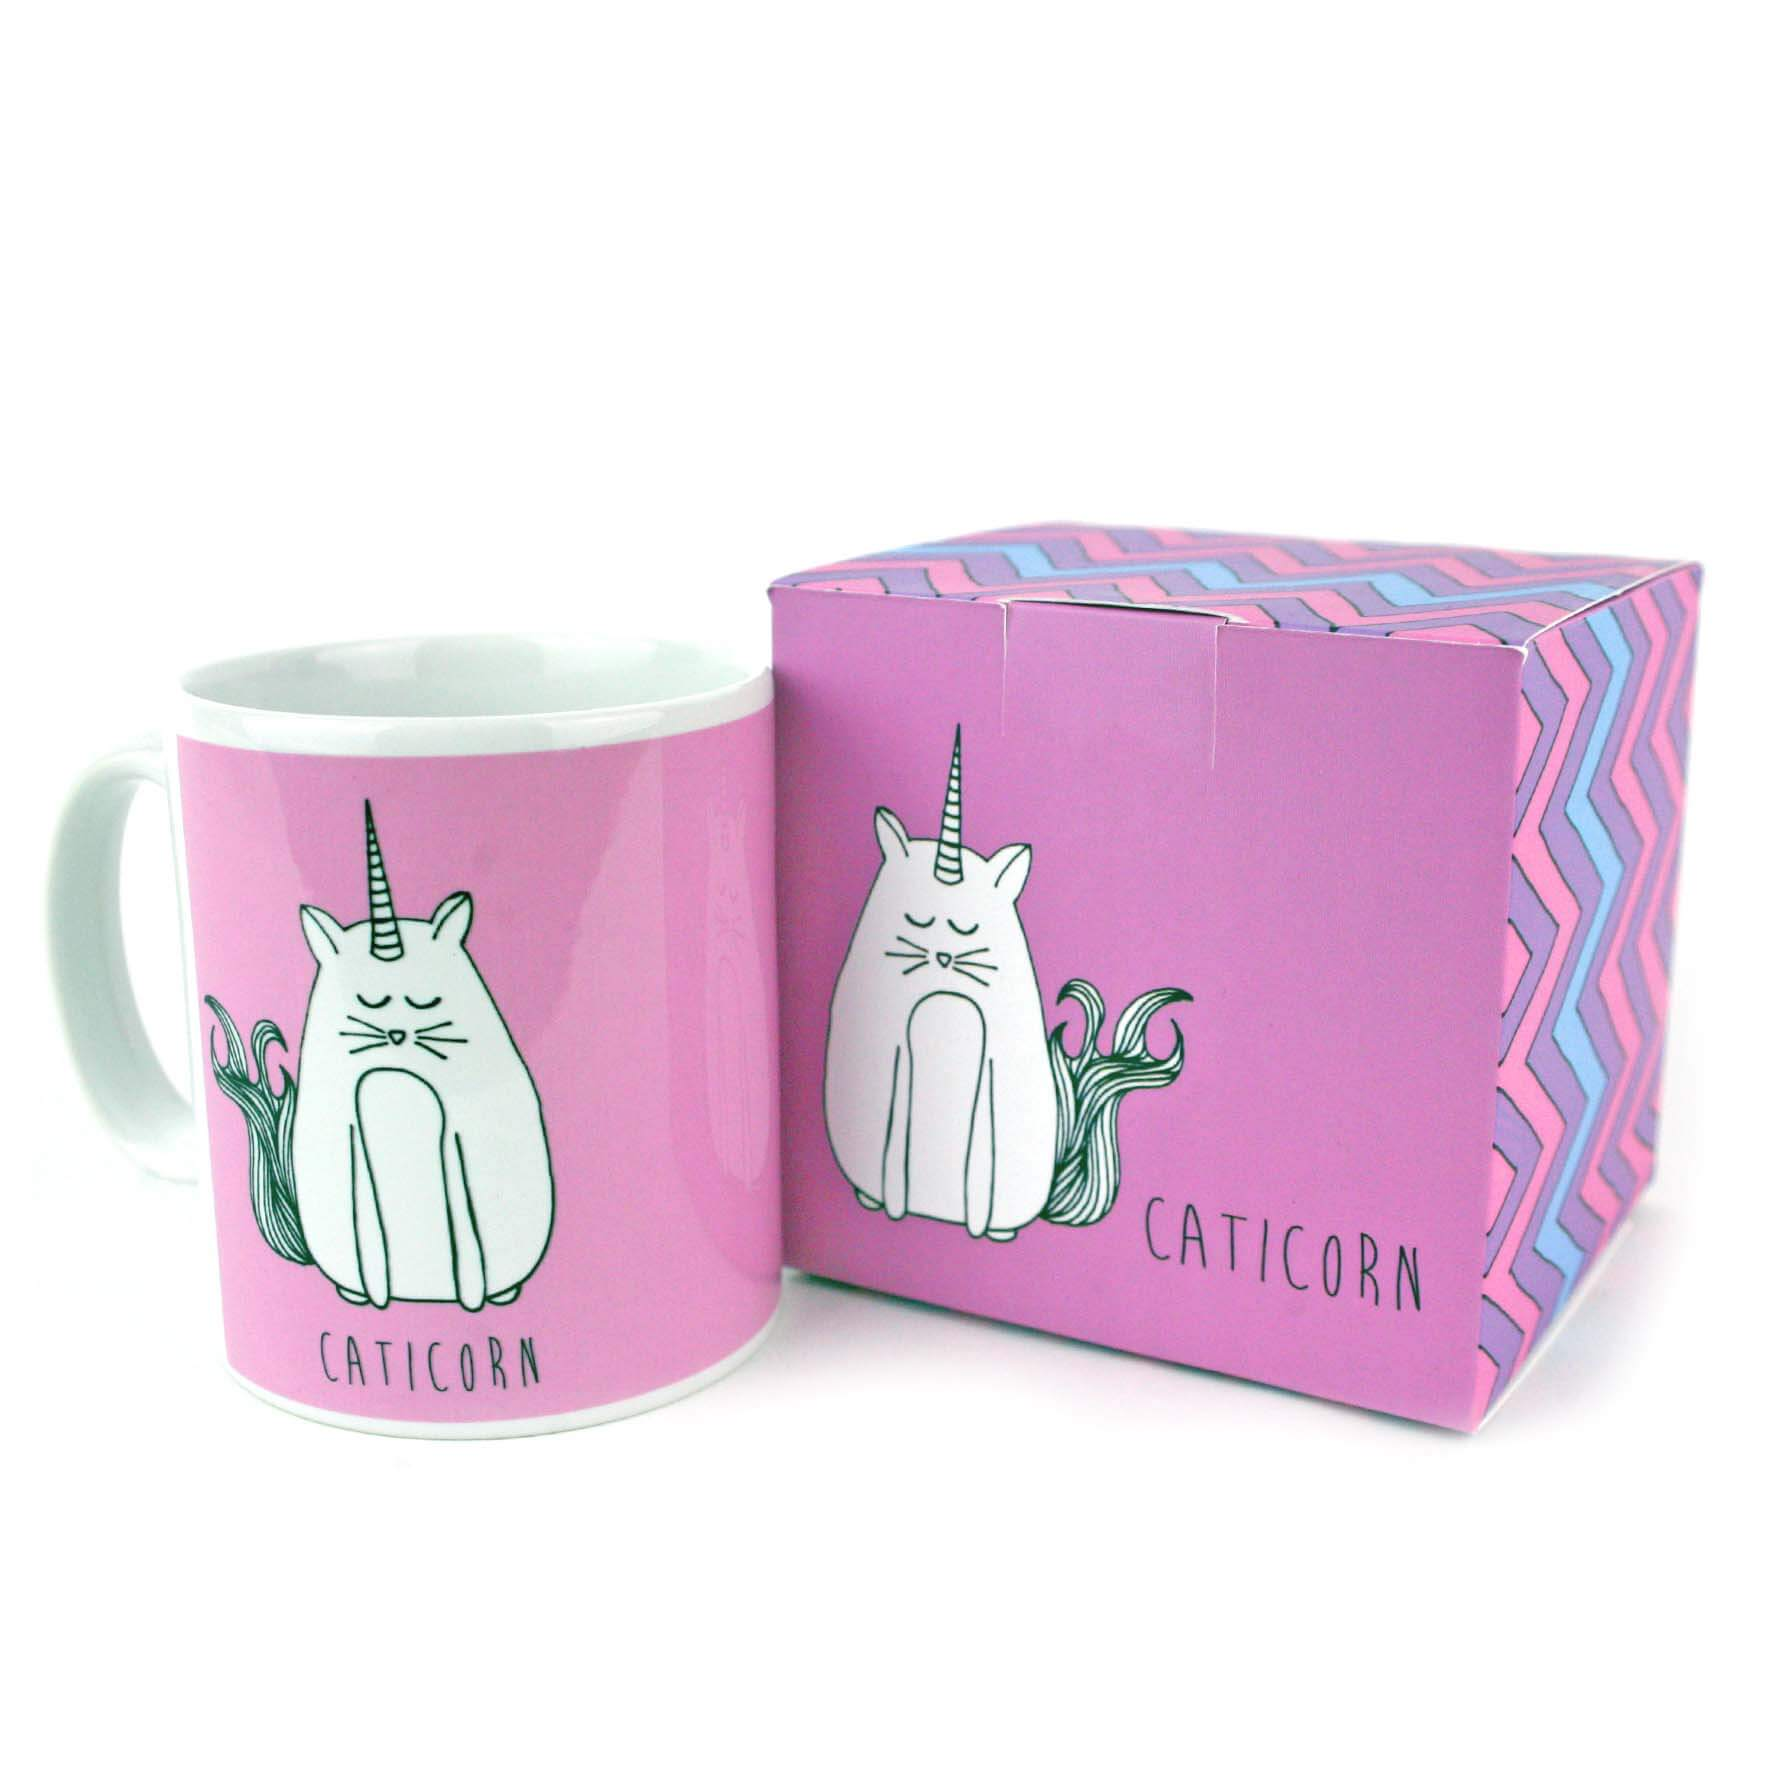 Pink mug with an illustration of a unicorn cat. Comes with caticorn gift box